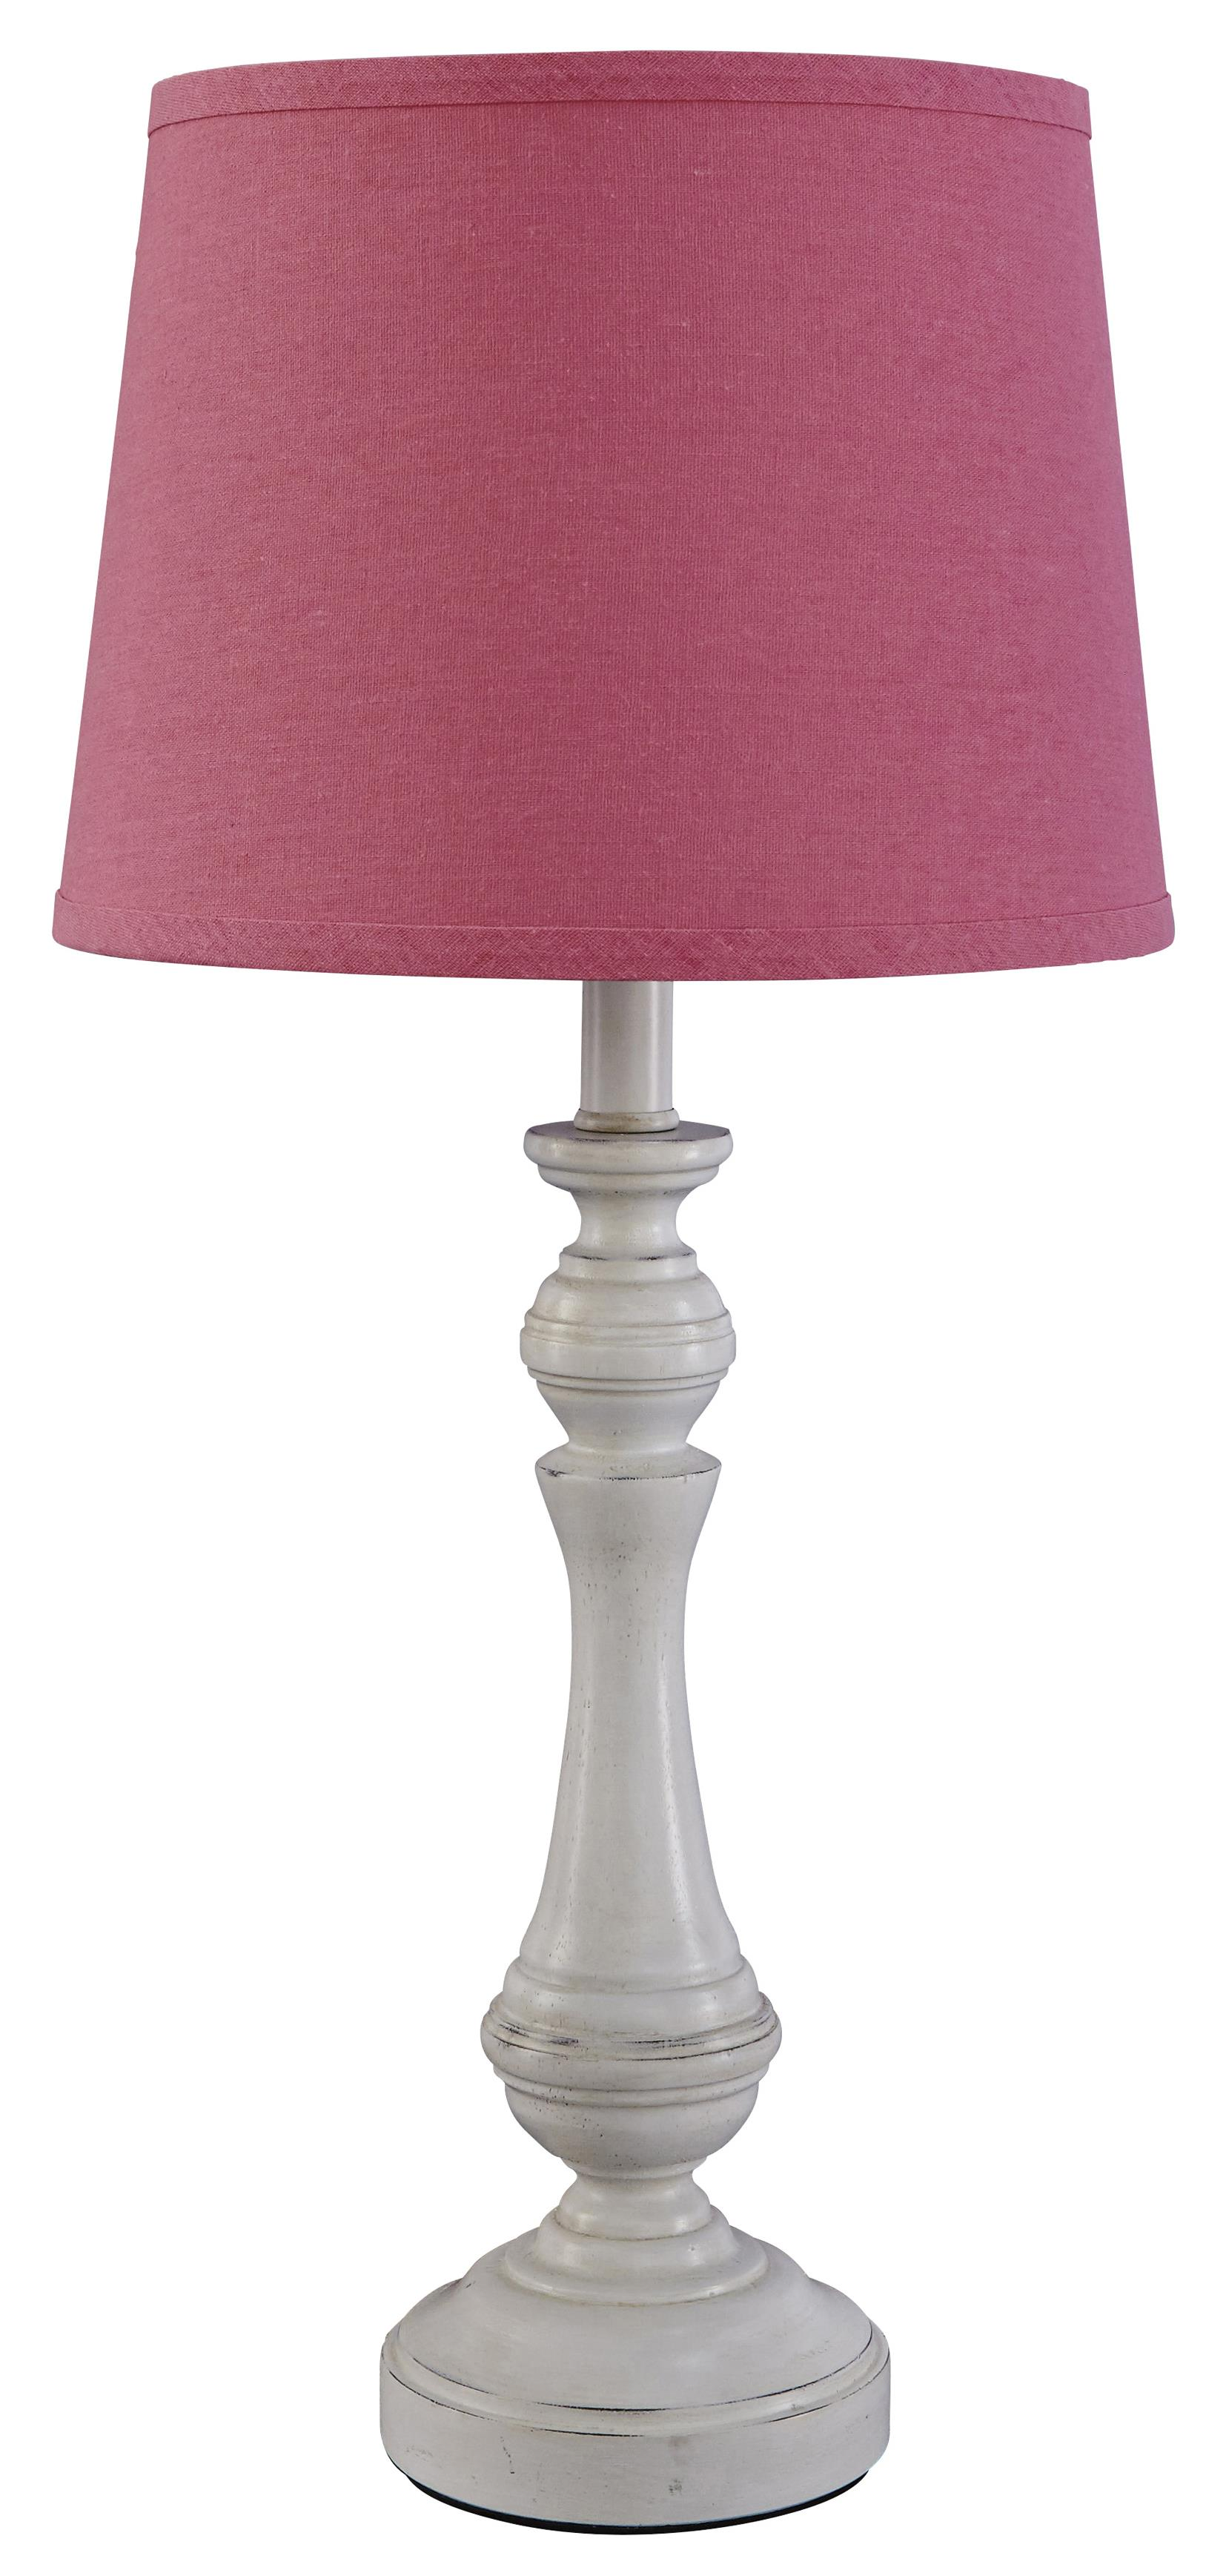 Signature Design by Ashley Lamps - Traditional Classics Kian Poly Table Lamp - Item Number: L857544